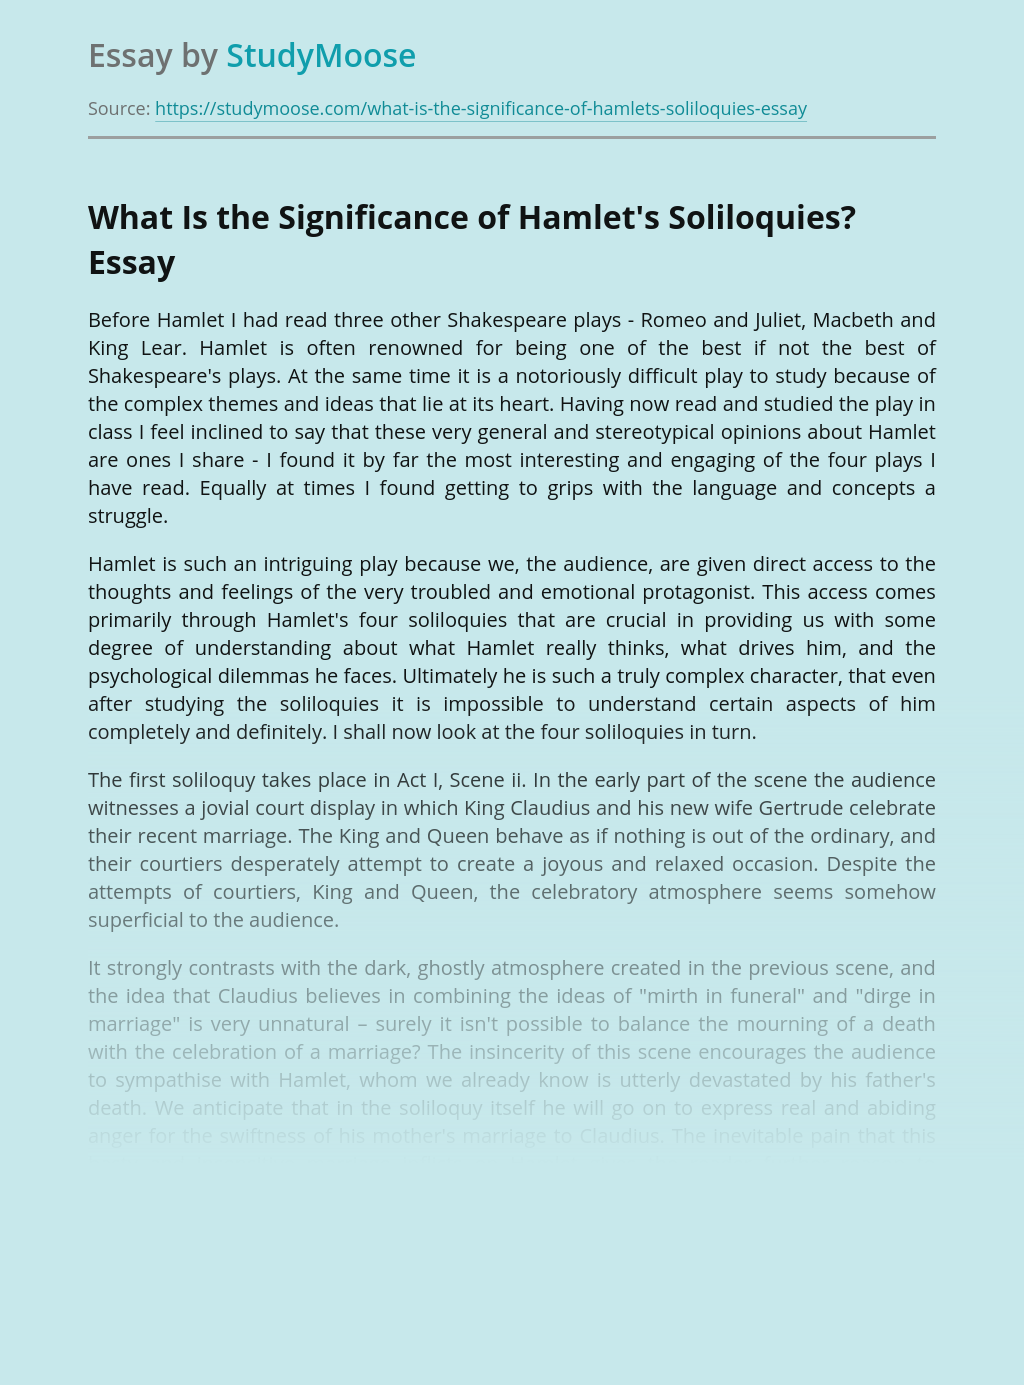 What Is the Significance of Hamlet's Soliloquies?